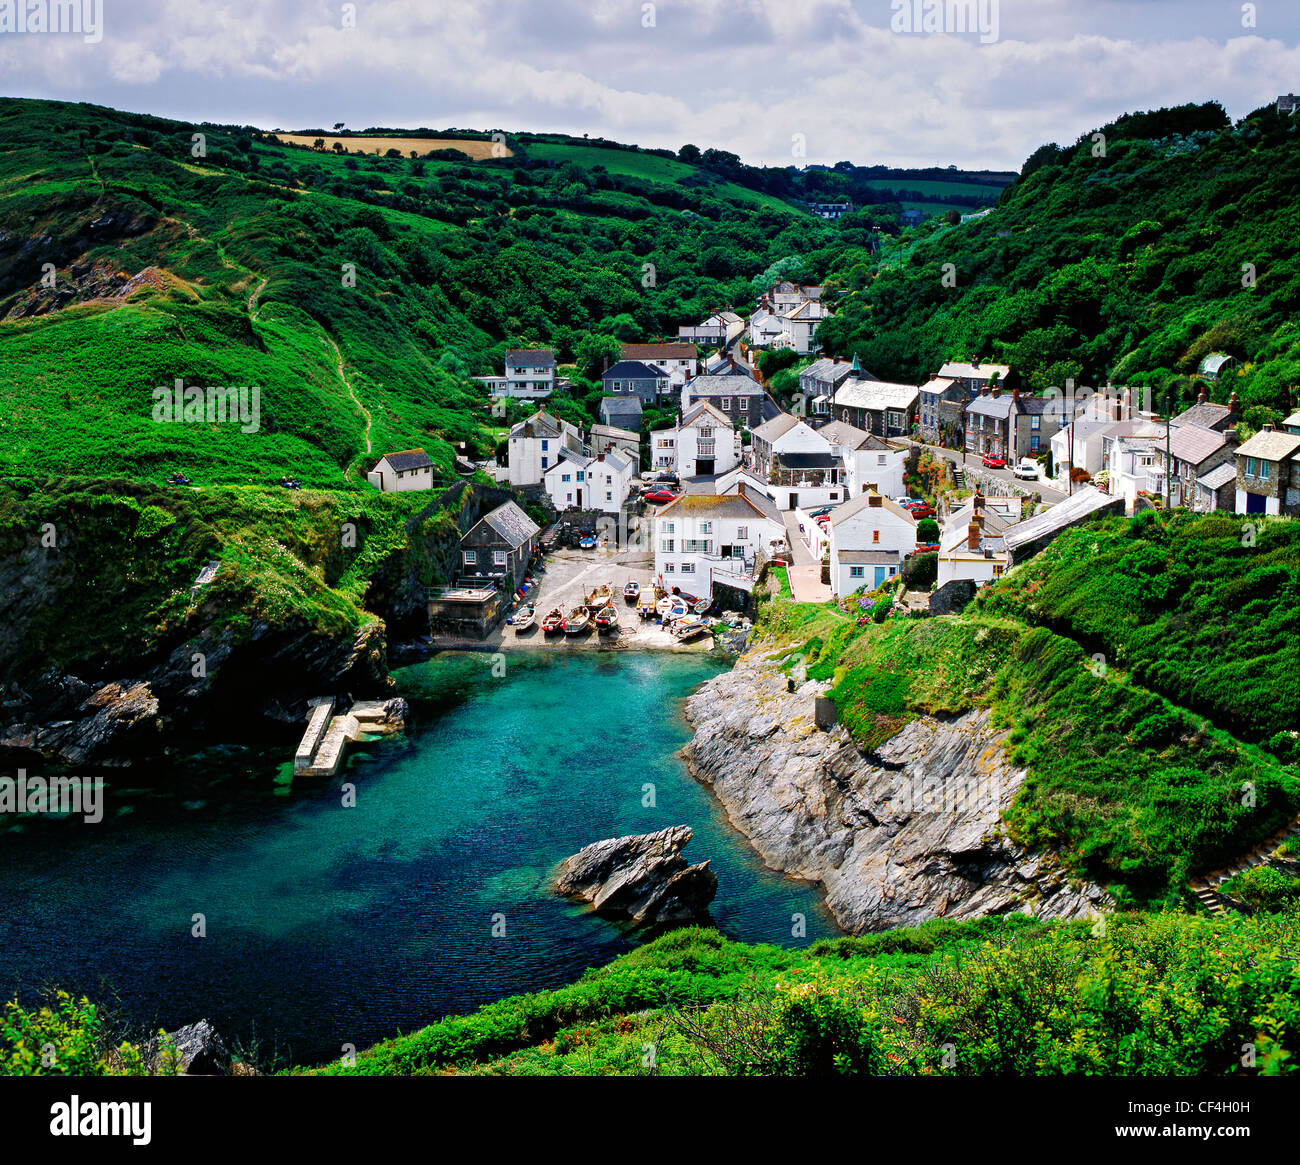 Portloe, a small, unspoilt, fishing village on the Roseland Peninsula, 12 miles from both Truro and St. Austell. - Stock Image